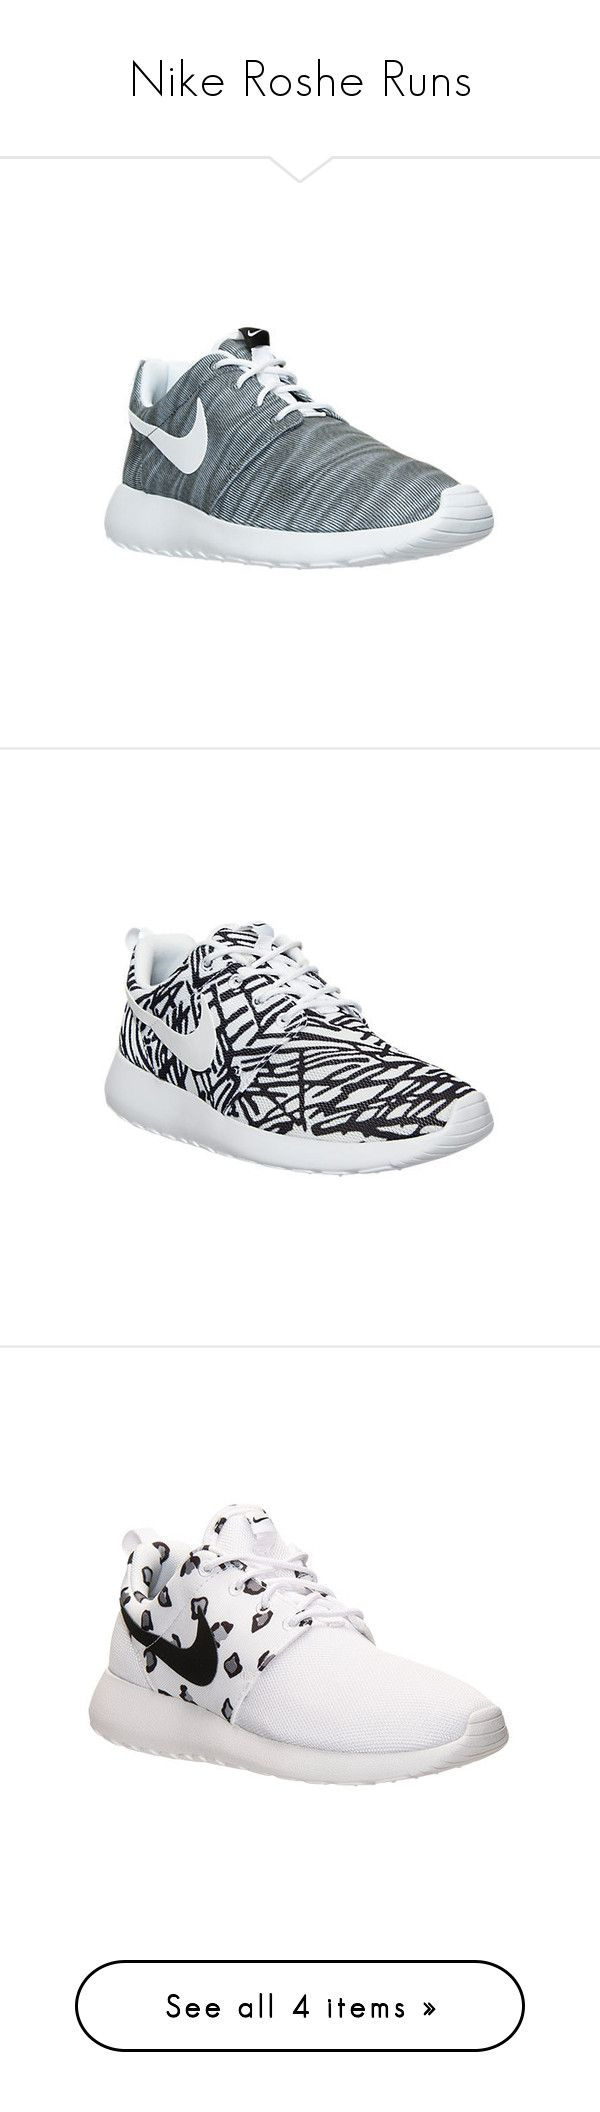 """Nike Roshe Runs"" by typical-dresser ❤ liked on Polyvore featuring shoes, grey, jogging shoes, low shoes, nike shoes, patterned shoes, nike, white, light weight shoes and nike footwear"